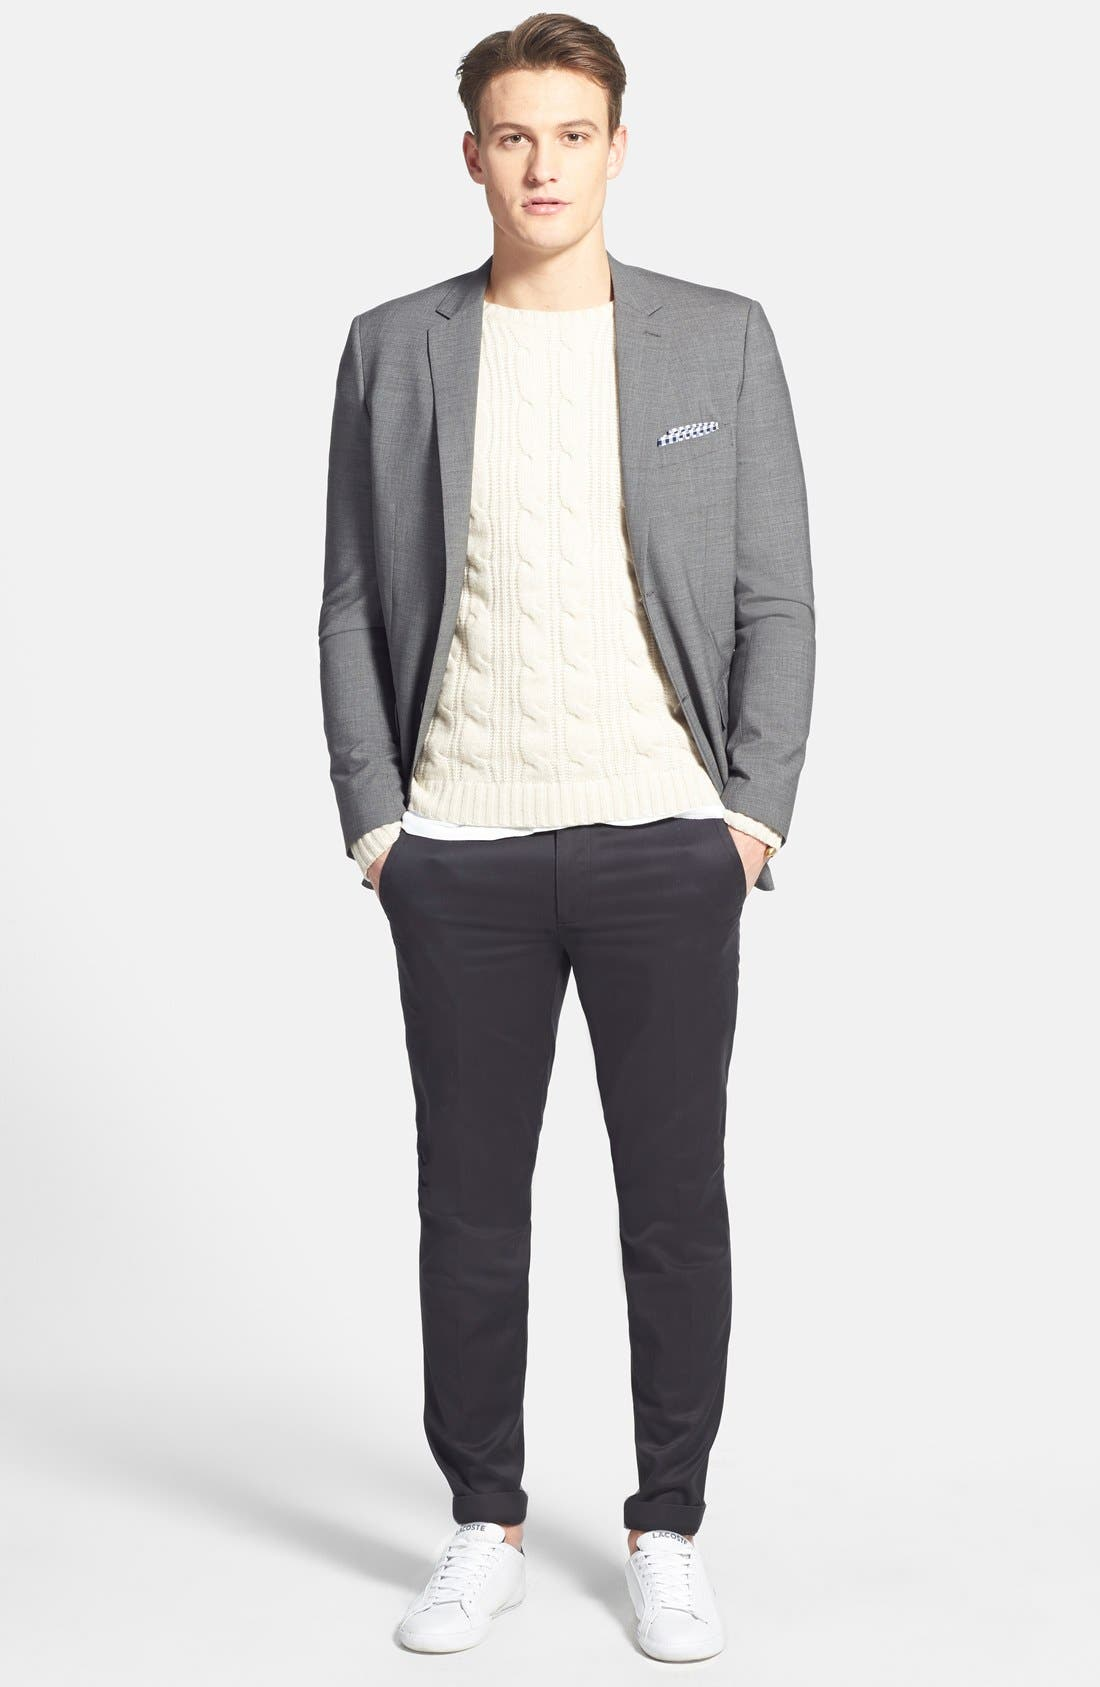 'Weekday Warriors' Non-Iron Tailored Cotton Chinos,                             Alternate thumbnail 9, color,                             TUESDAY BLACKS